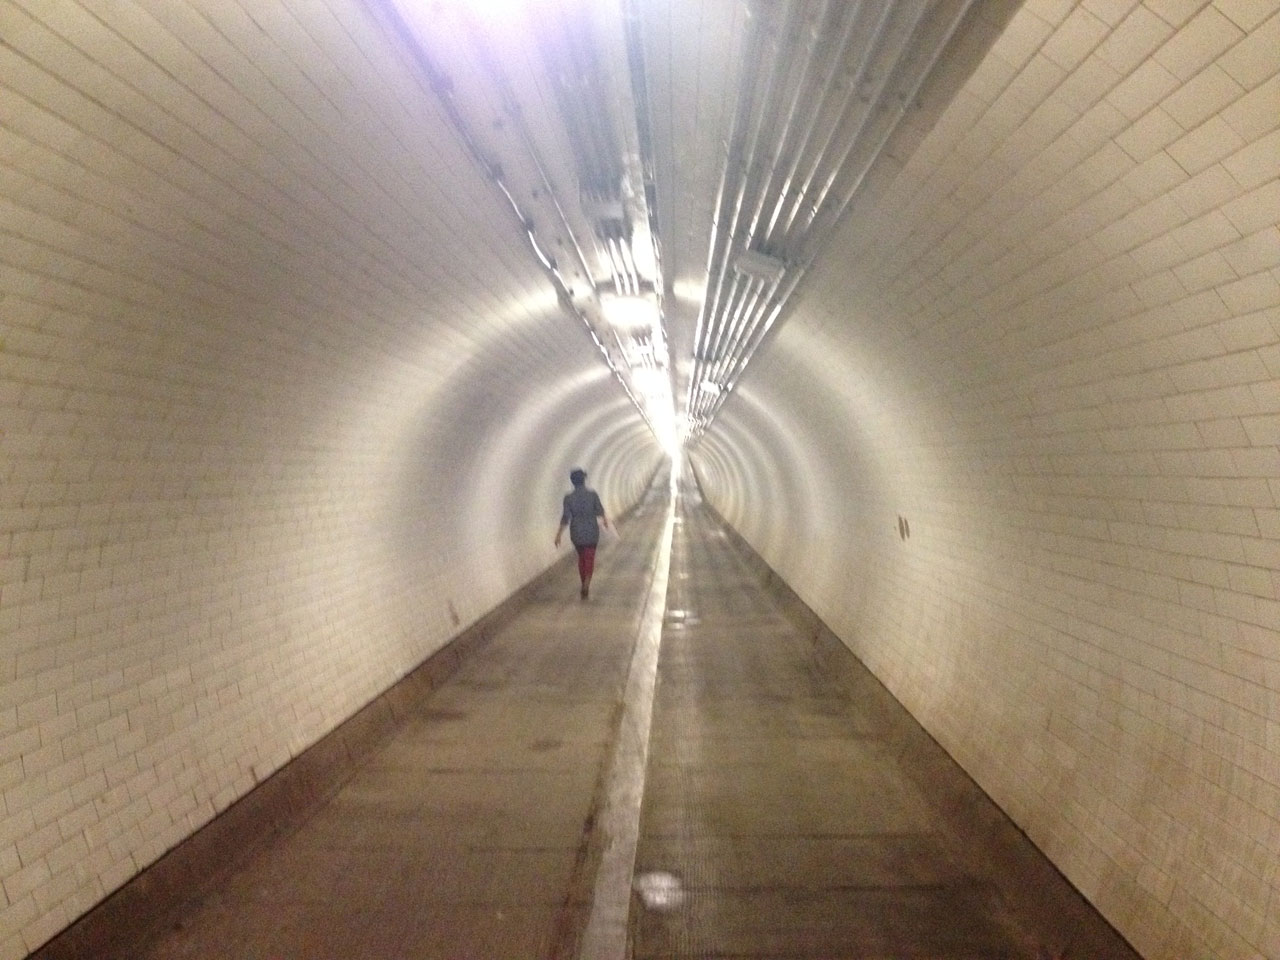 Woolwich foot tunnel, London